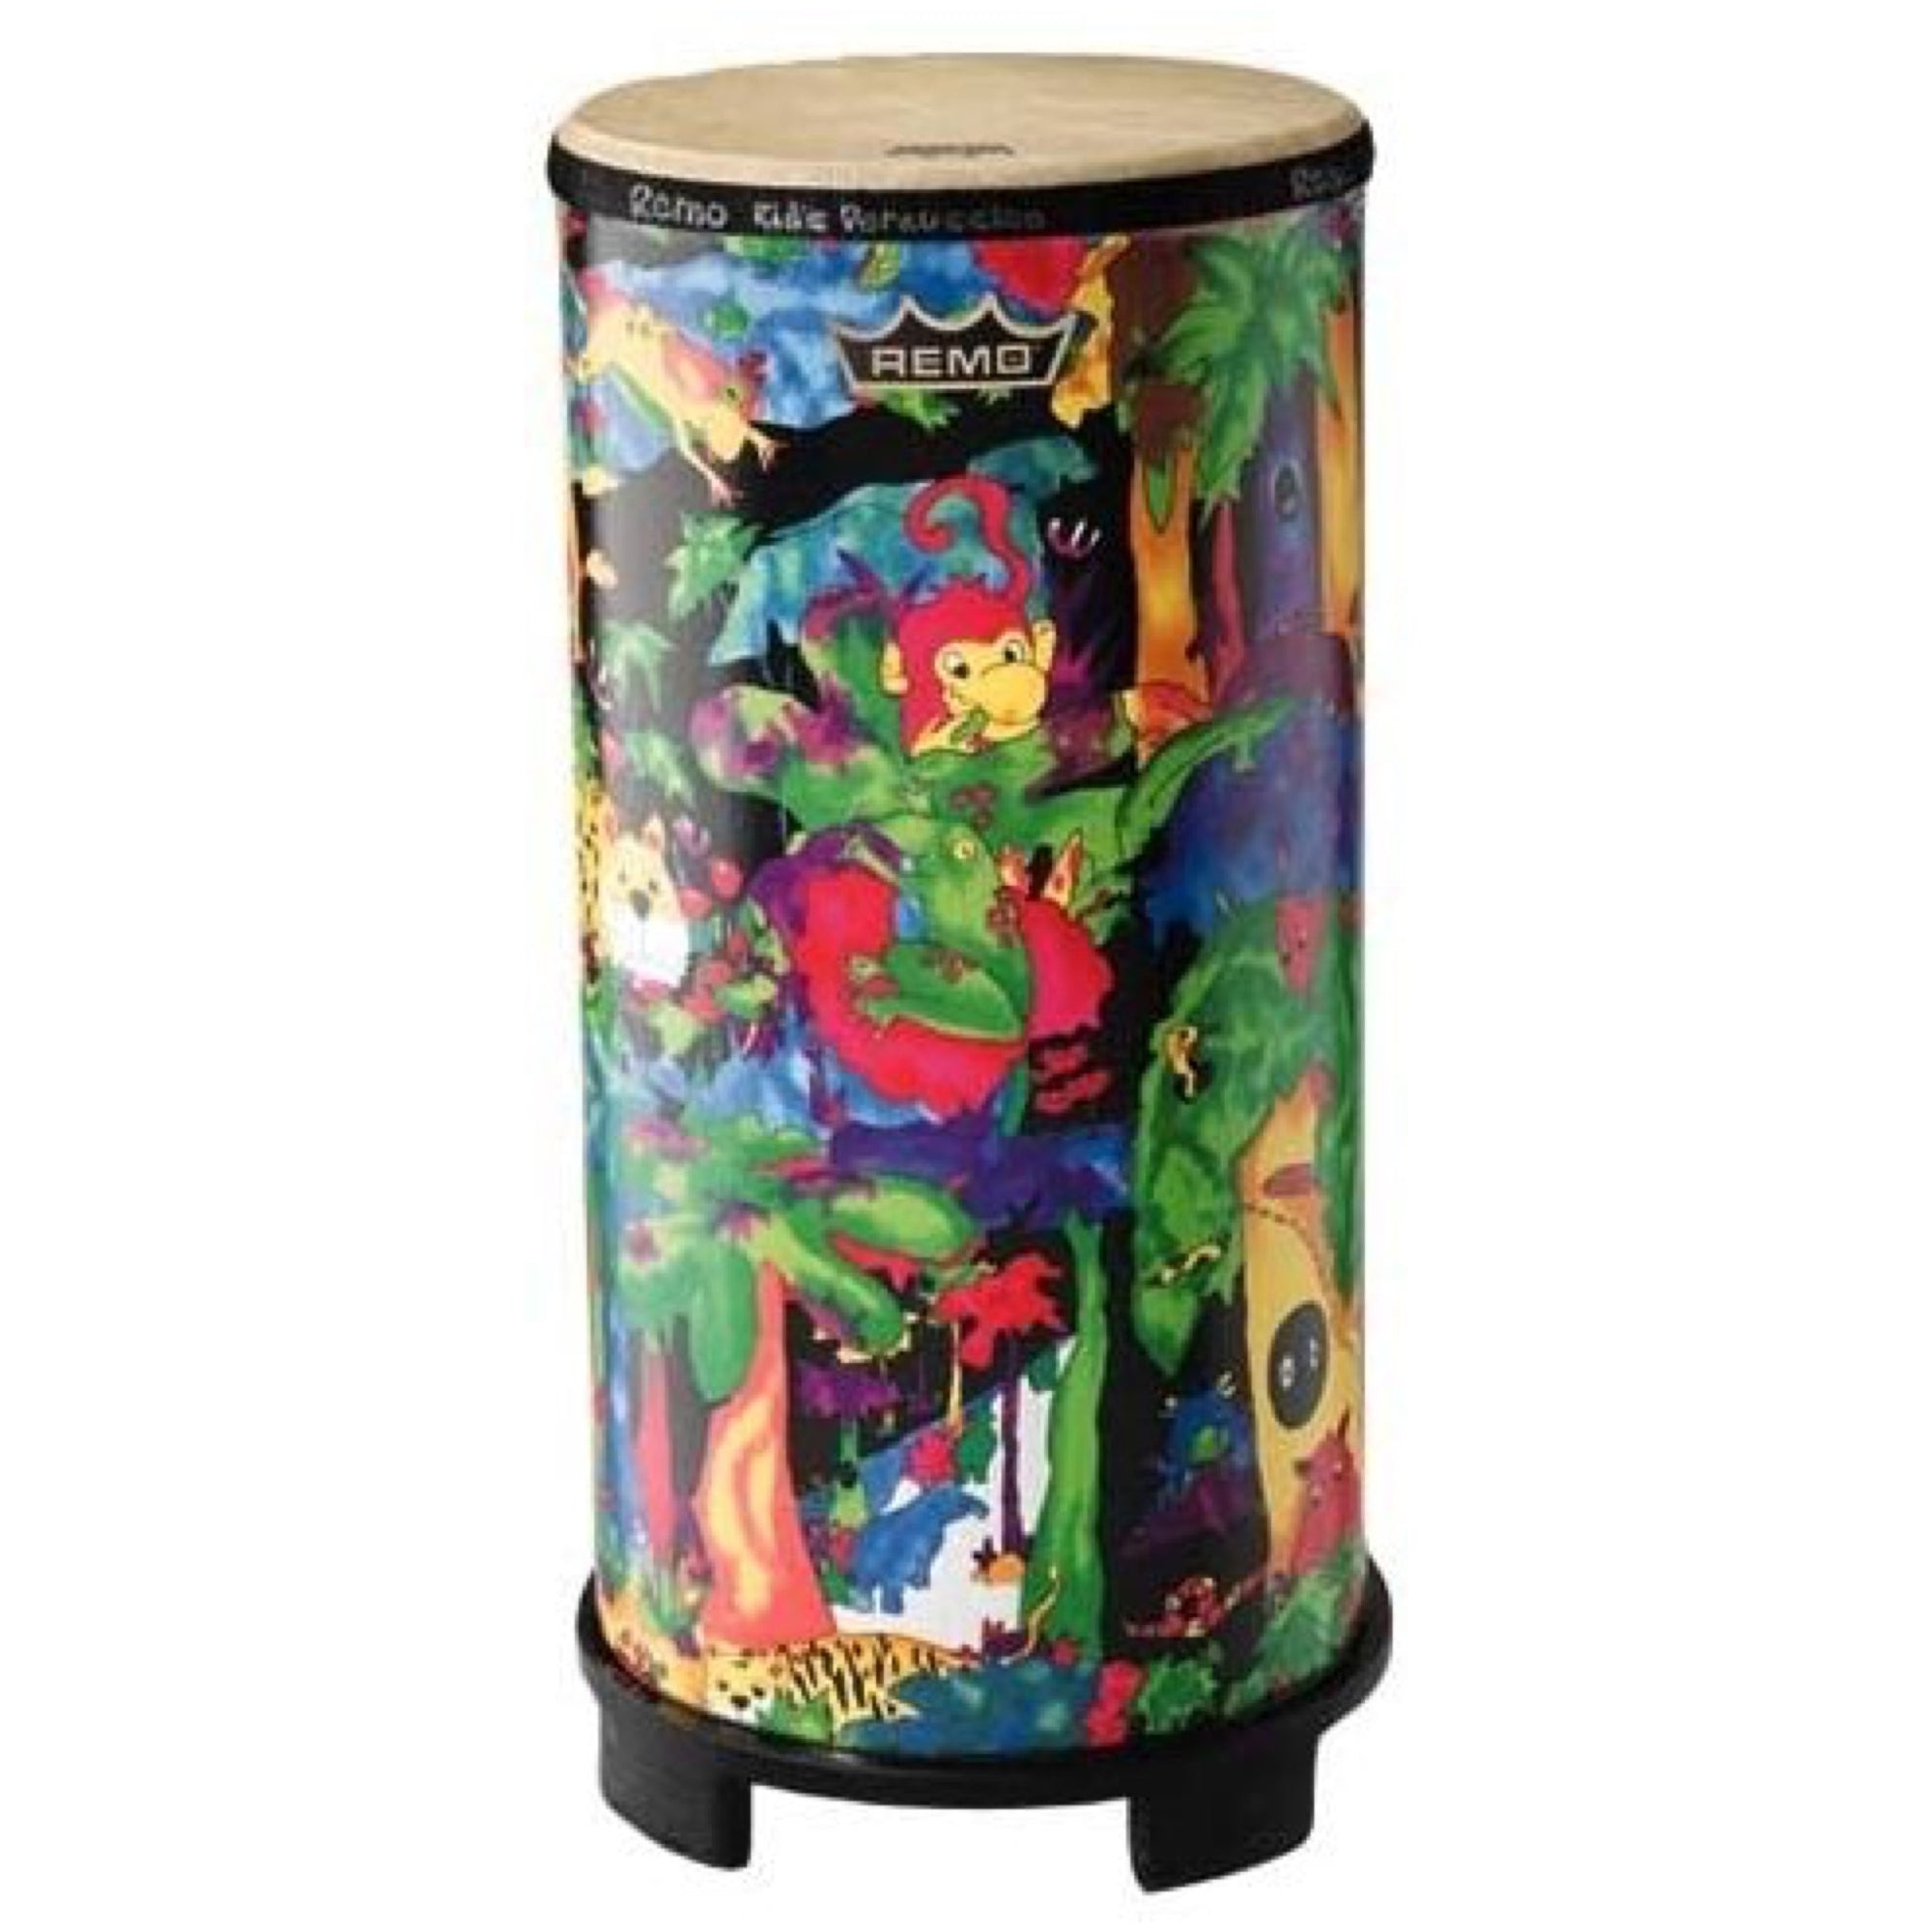 Remo Kids Percussion Tubano Drum, KD-0010-01, Rain Forest Fabric, 10 Inch